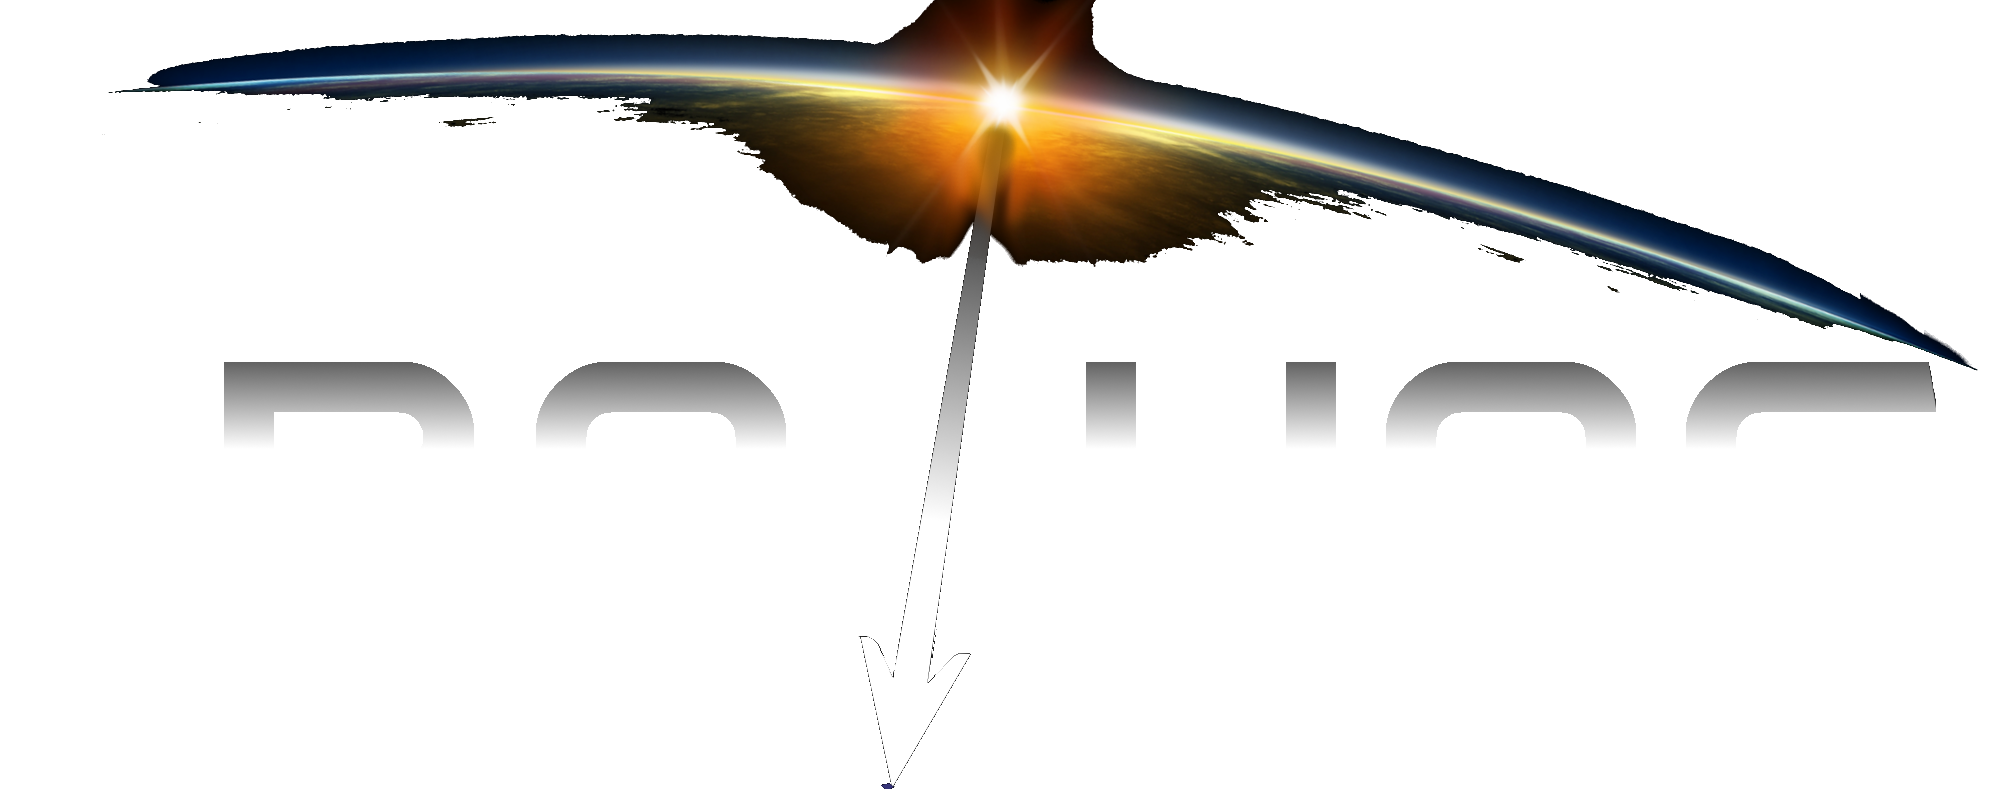 pathos_logo_alpha